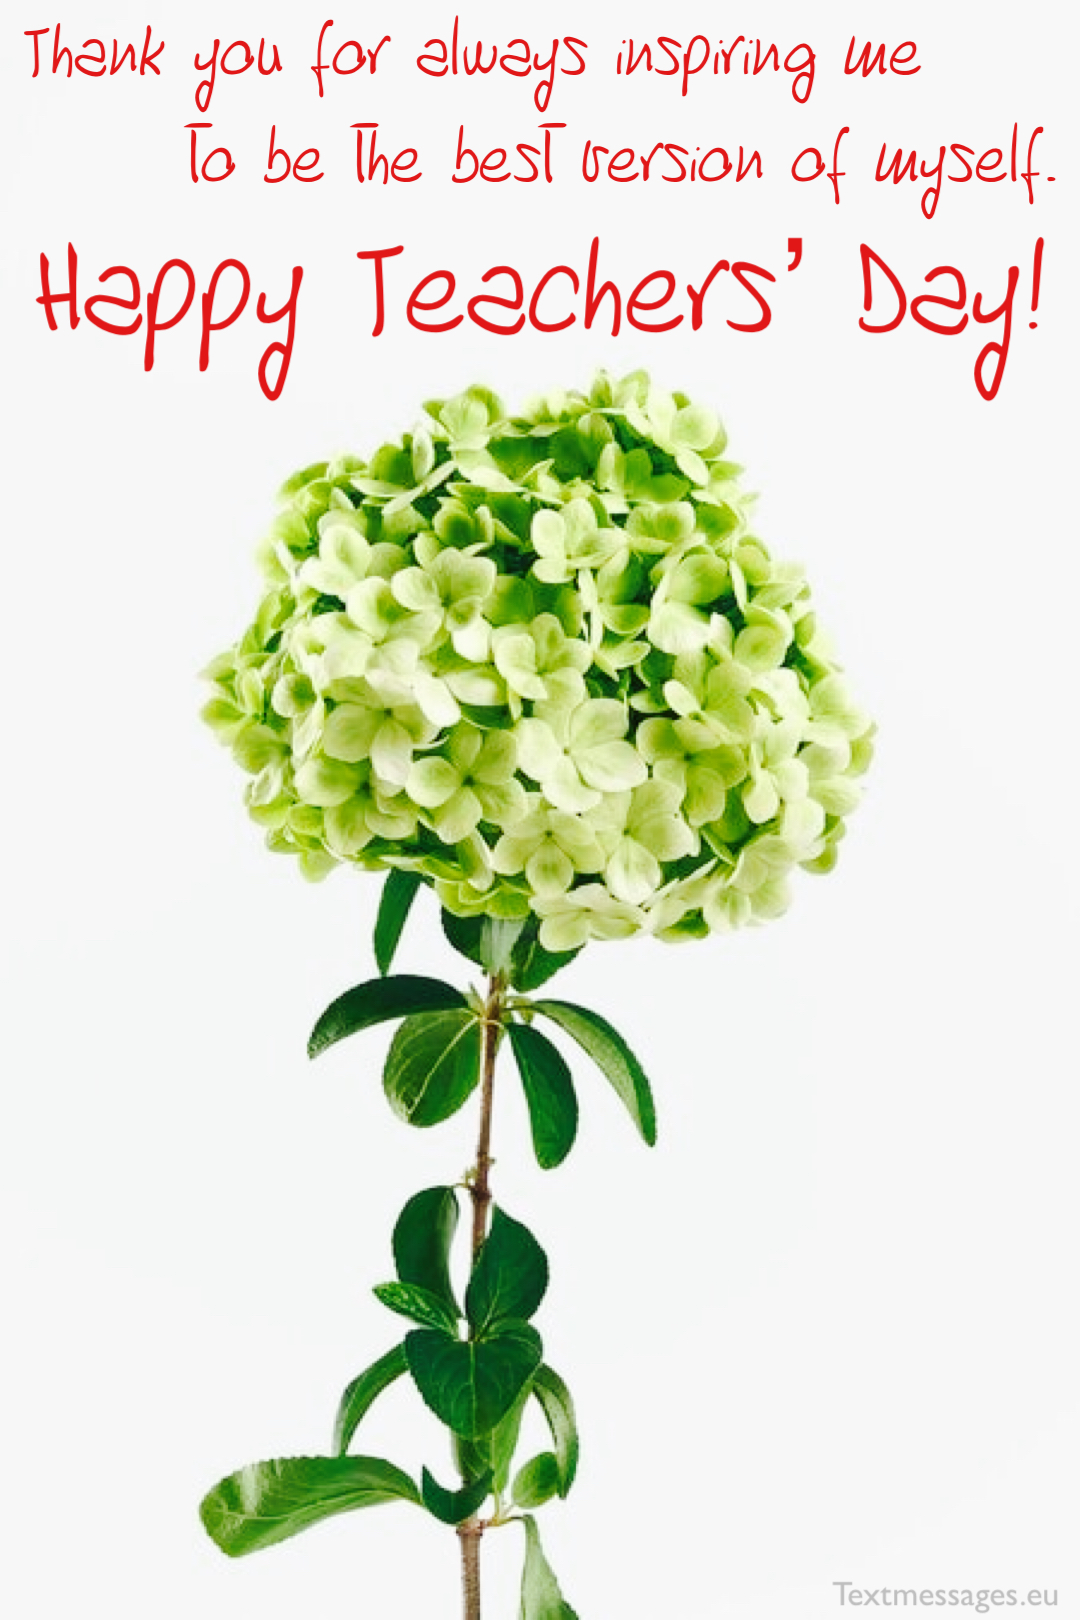 teacher's day image